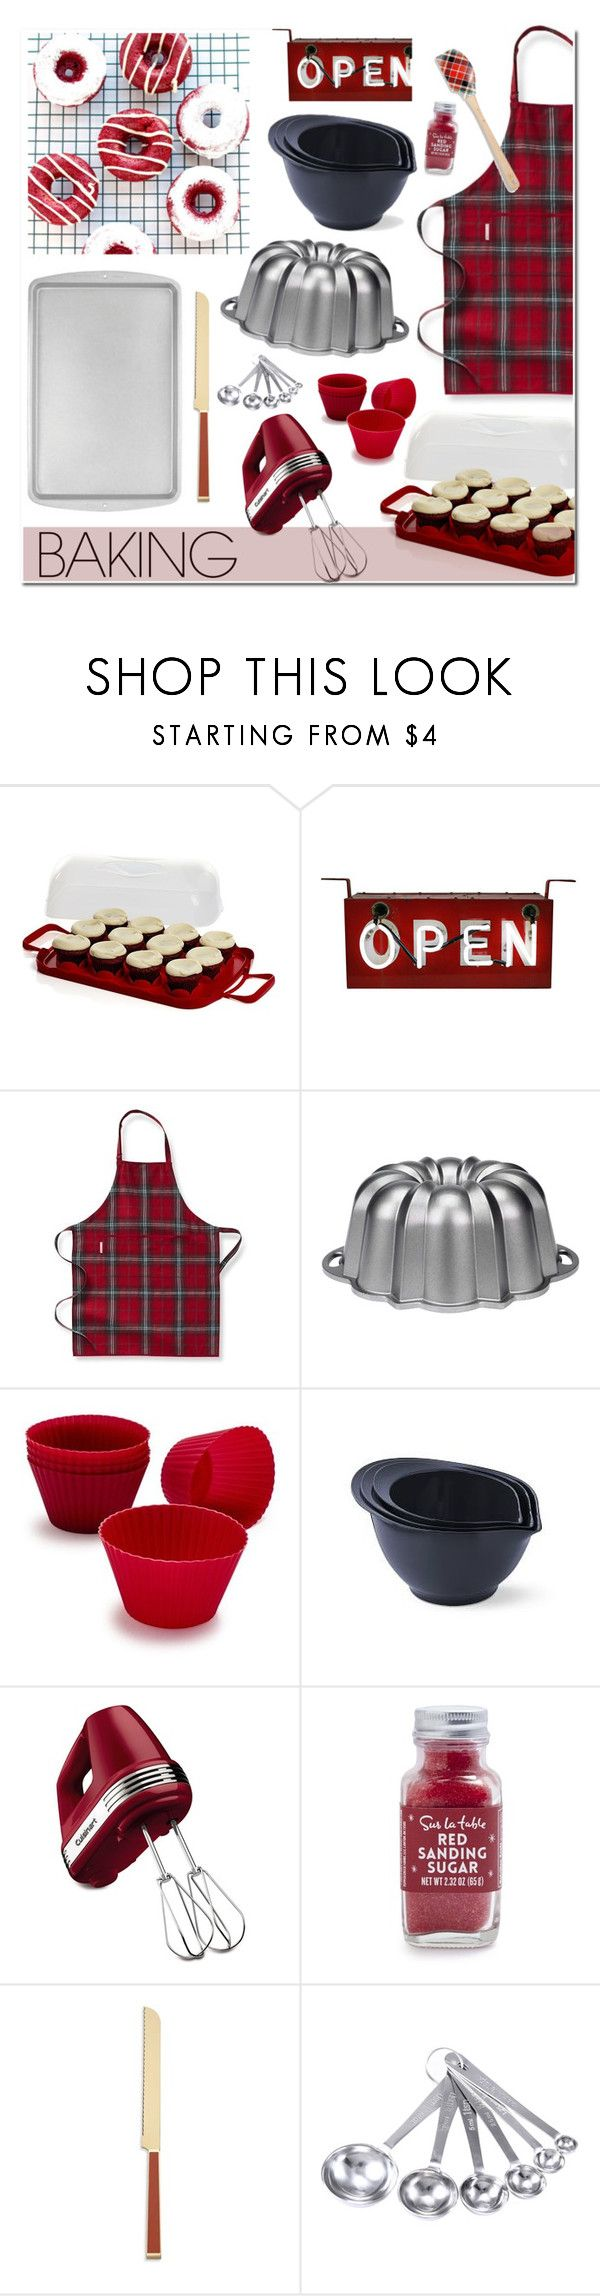 """#baking"" by hellodollface ❤ liked on Polyvore featuring interior, interiors, interior design, home, home decor, interior decorating, Crate and Barrel, Williams-Sonoma, Nordic Ware and Sur La Table"